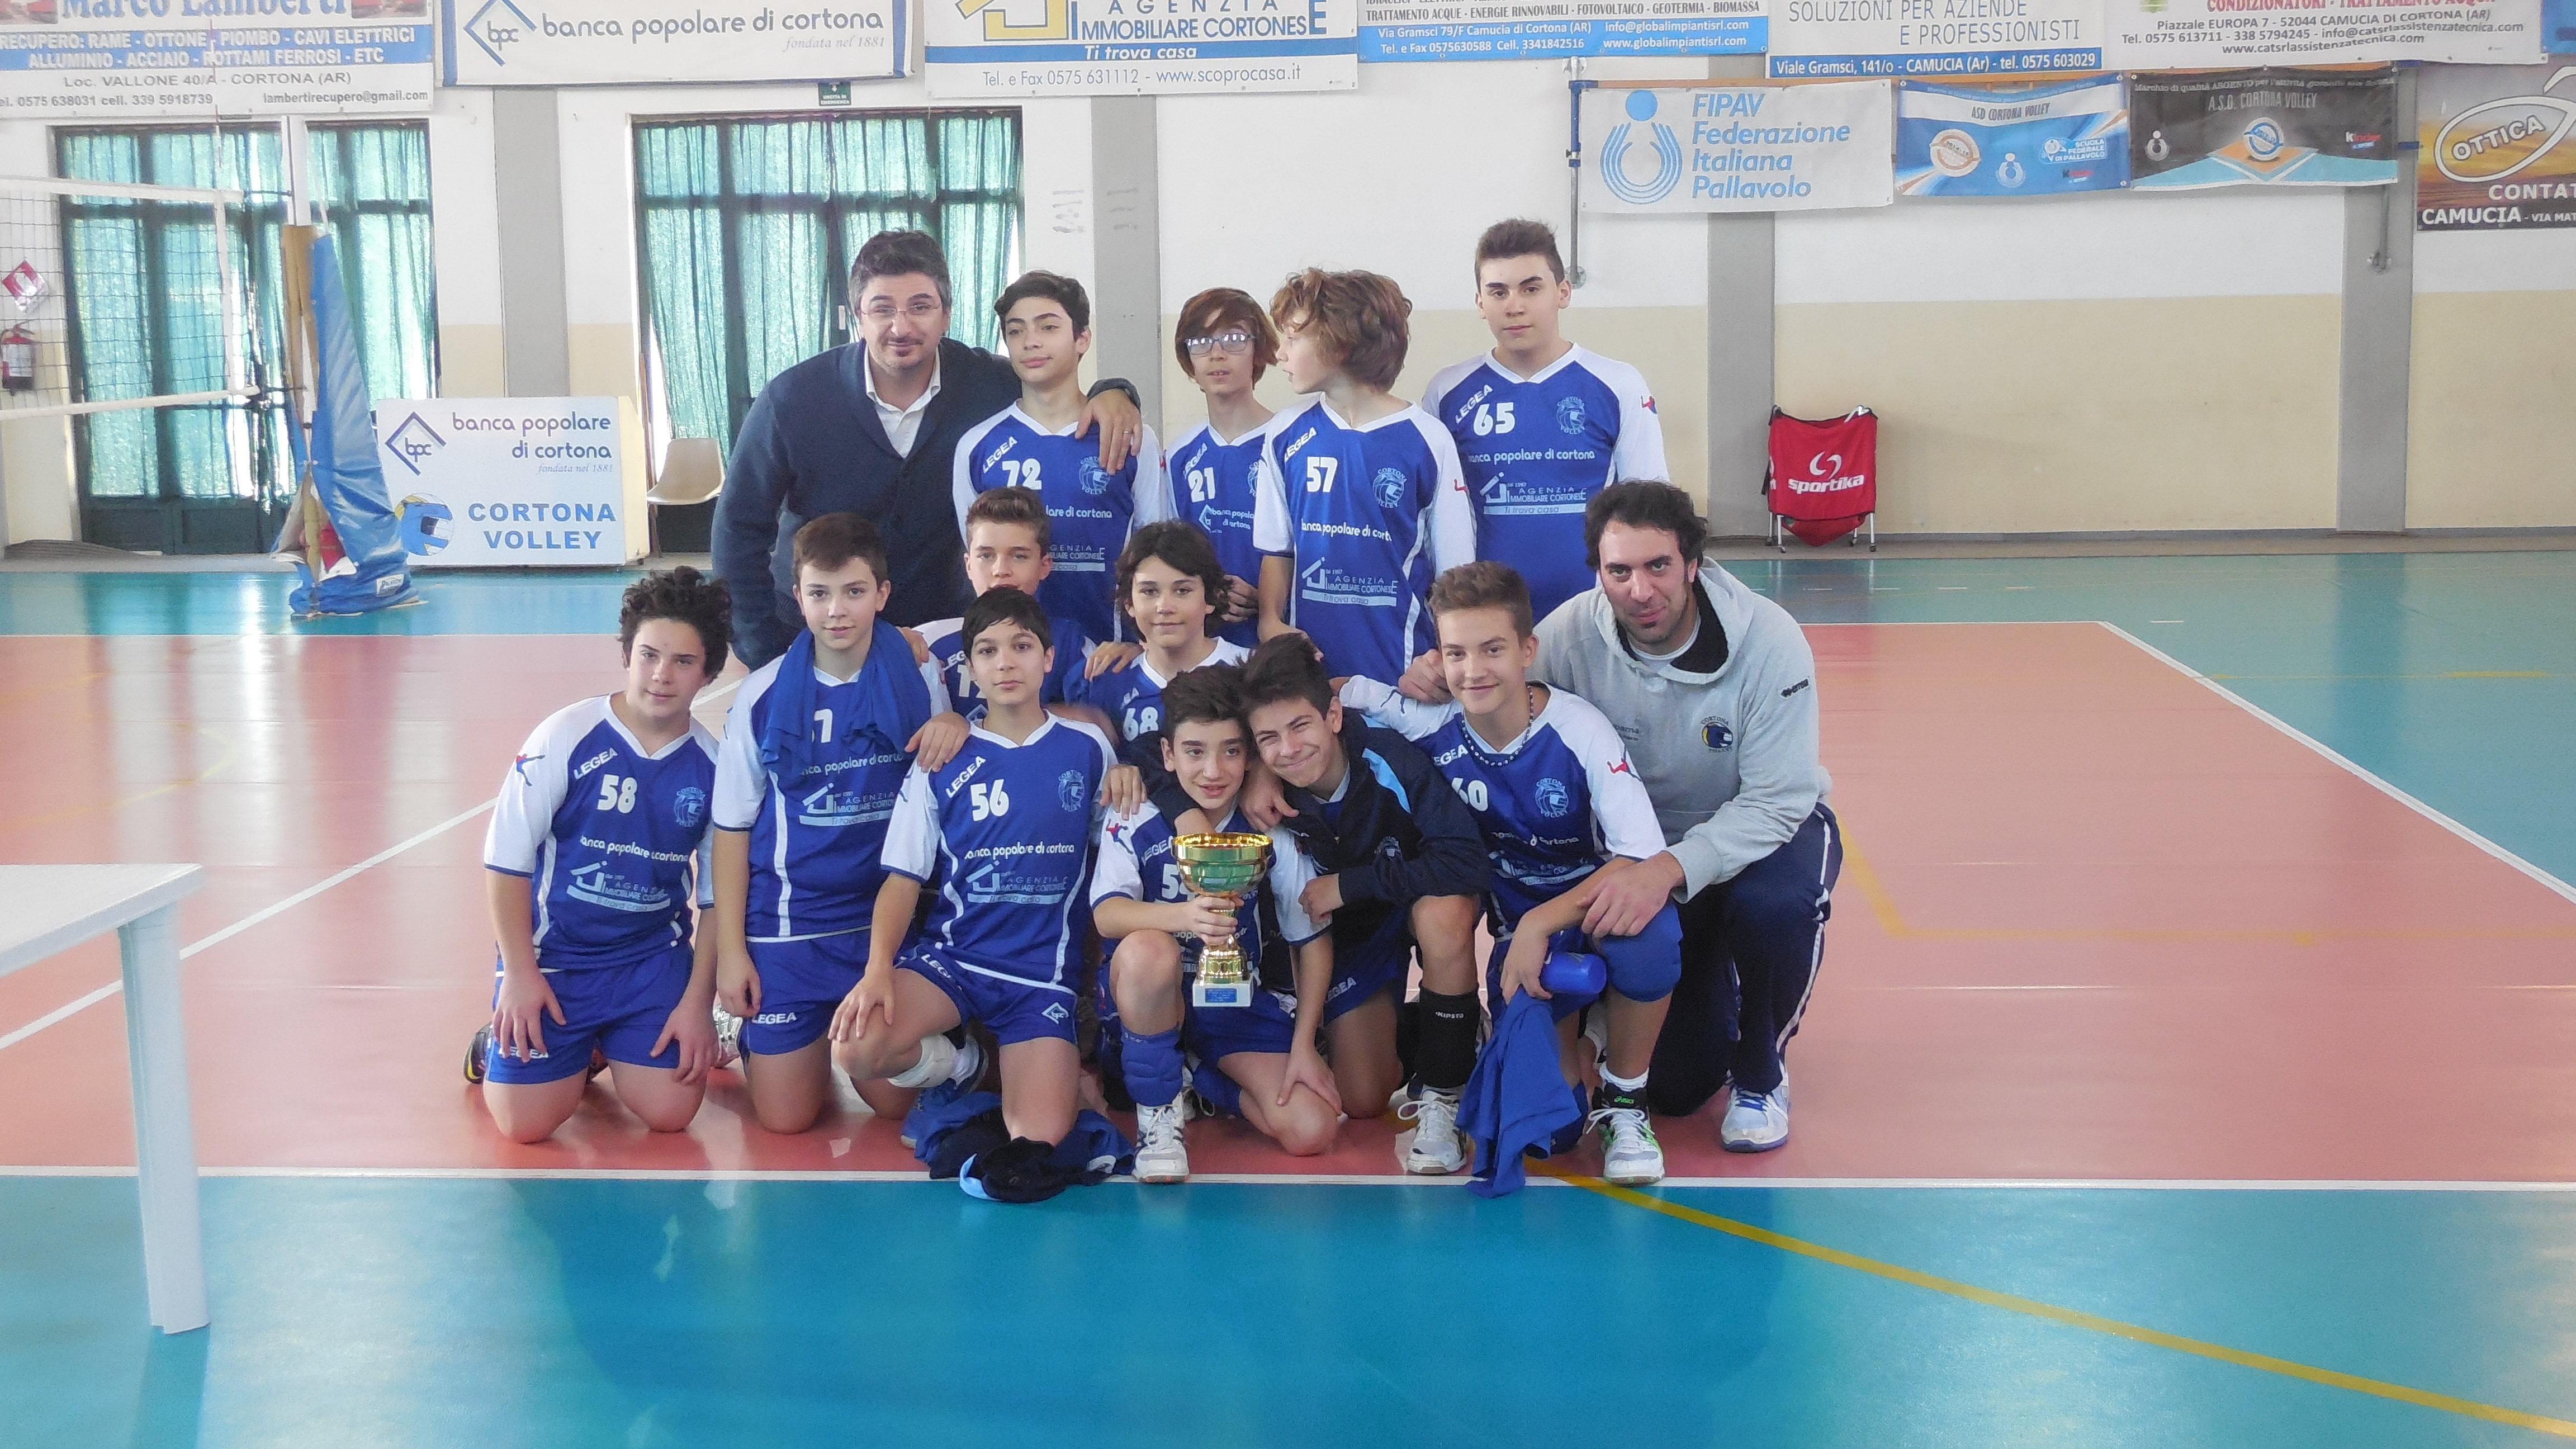 A Monte San Savino la finale interprovinciale Under 14 di Volley